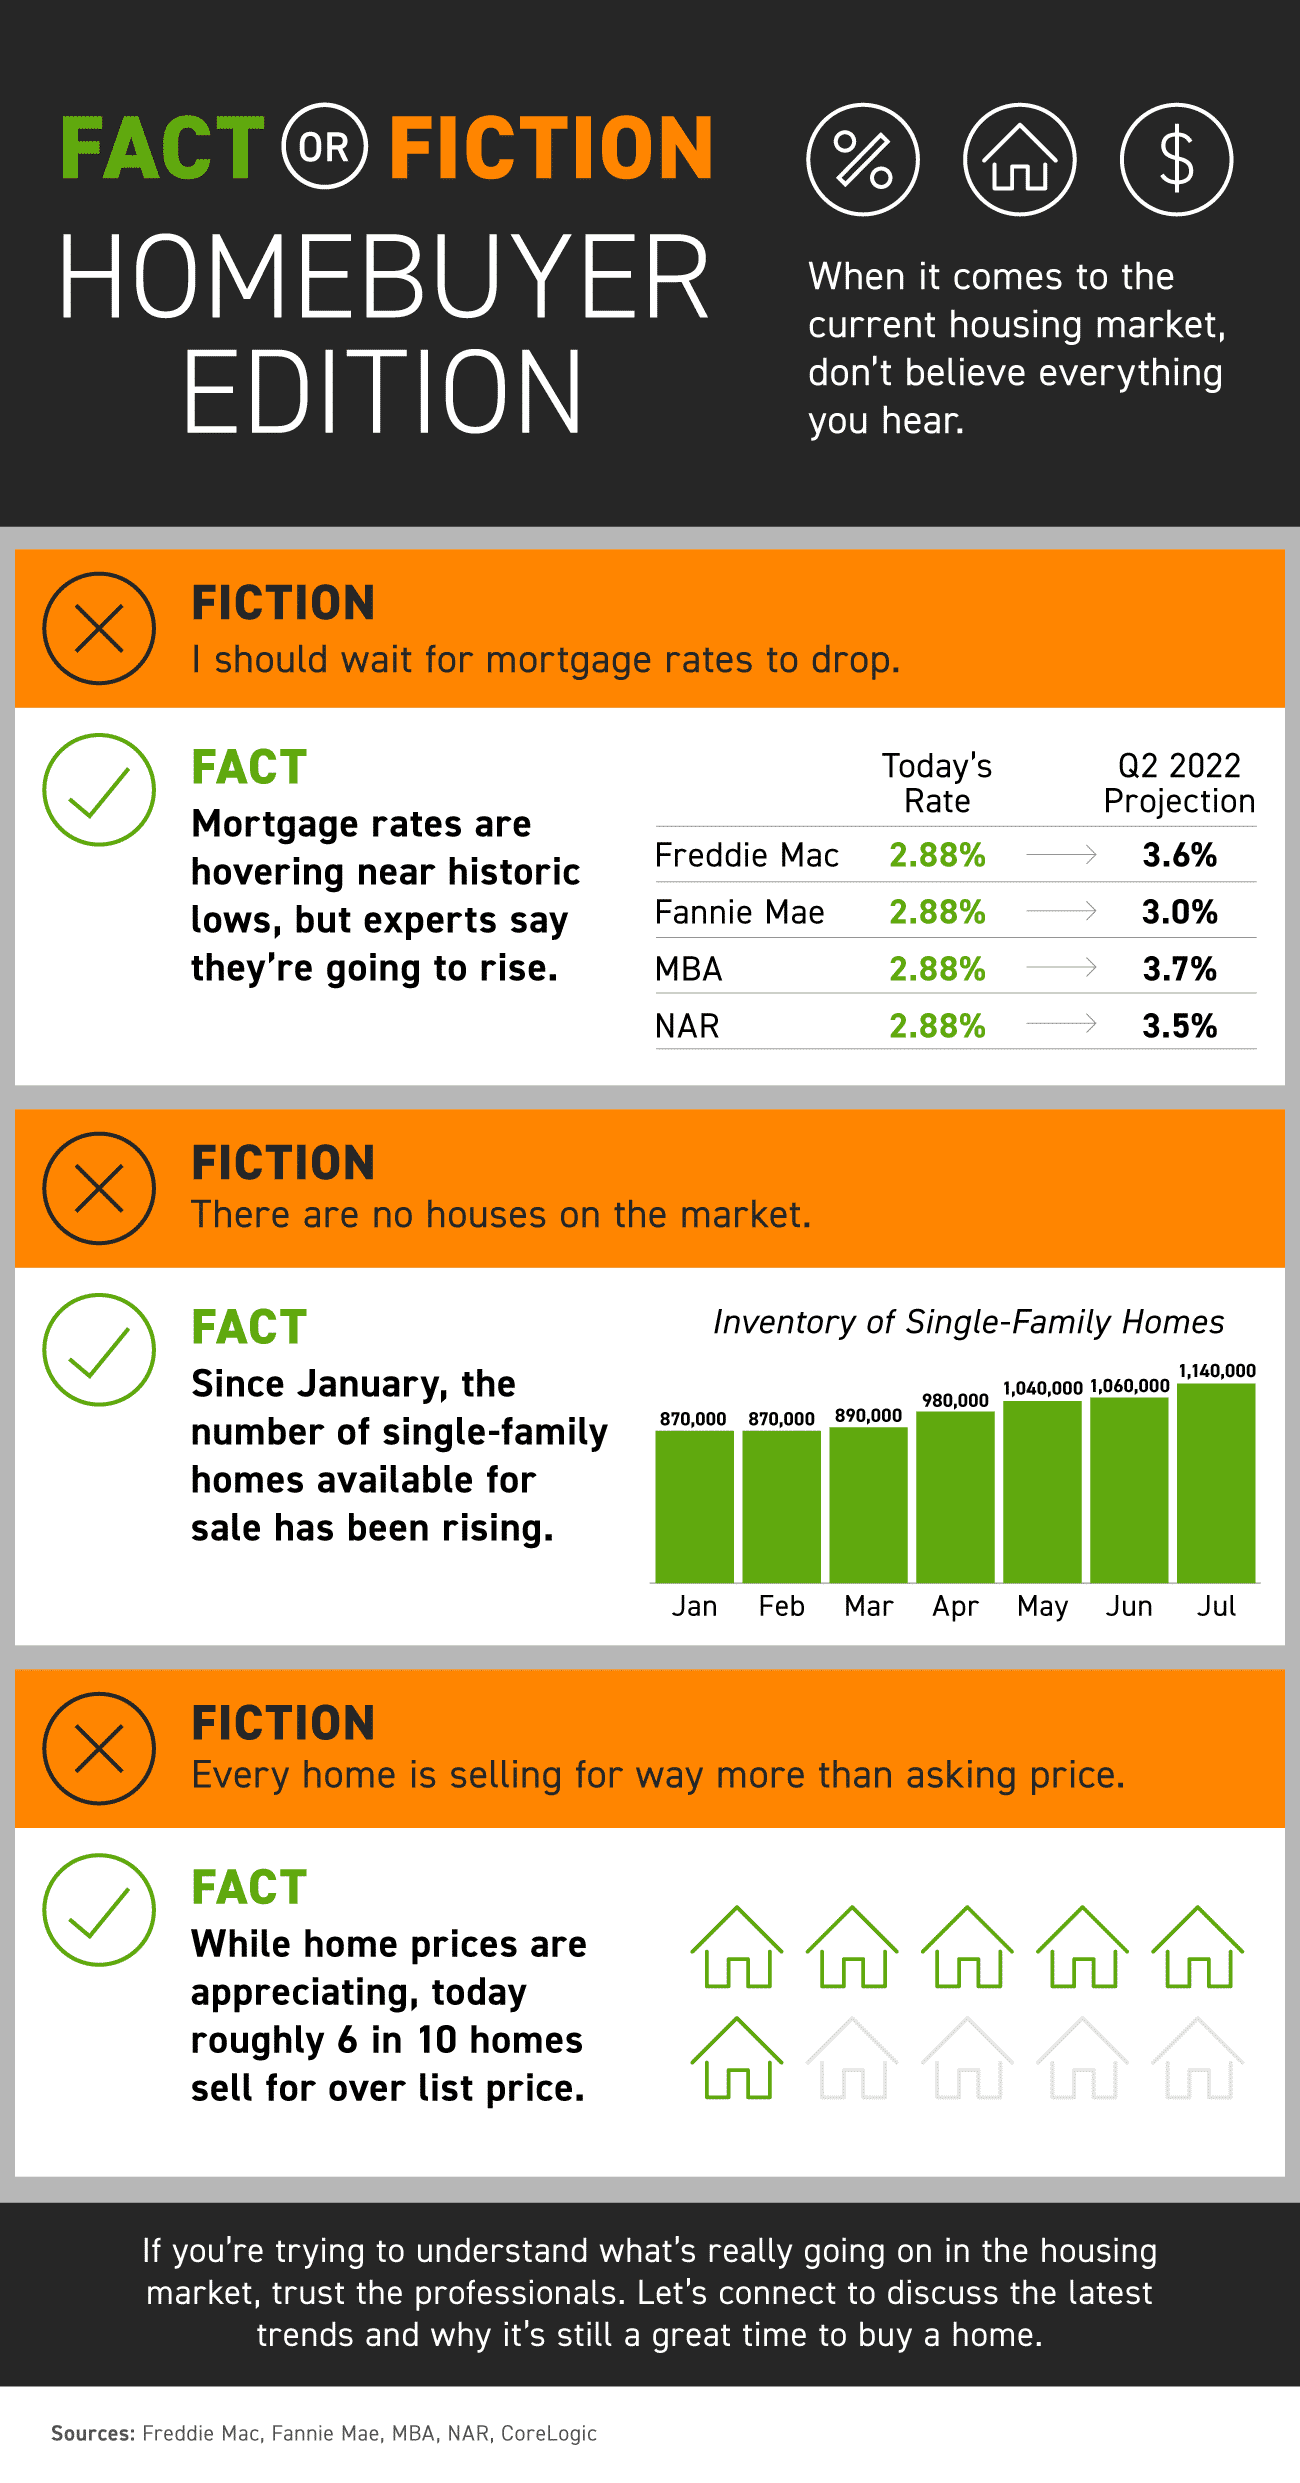 Fact or Fiction: Homebuyer Edition [INFOGRAPHIC]